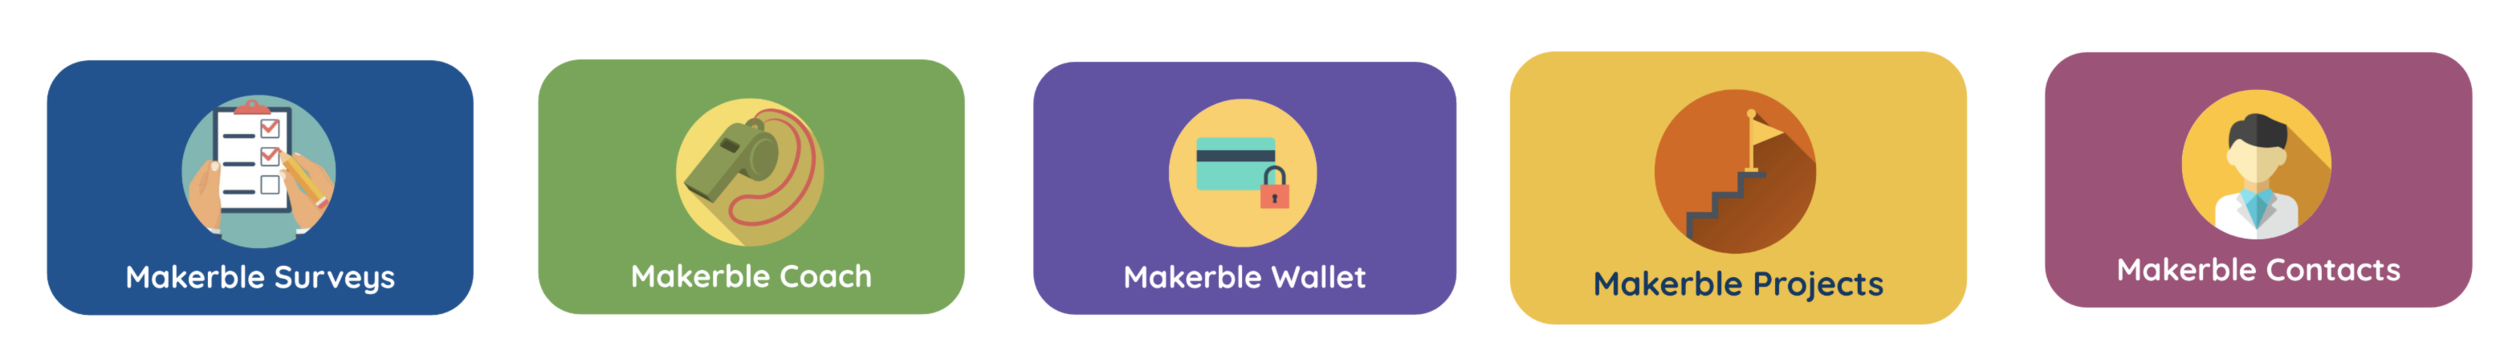 makerble product logos row.png